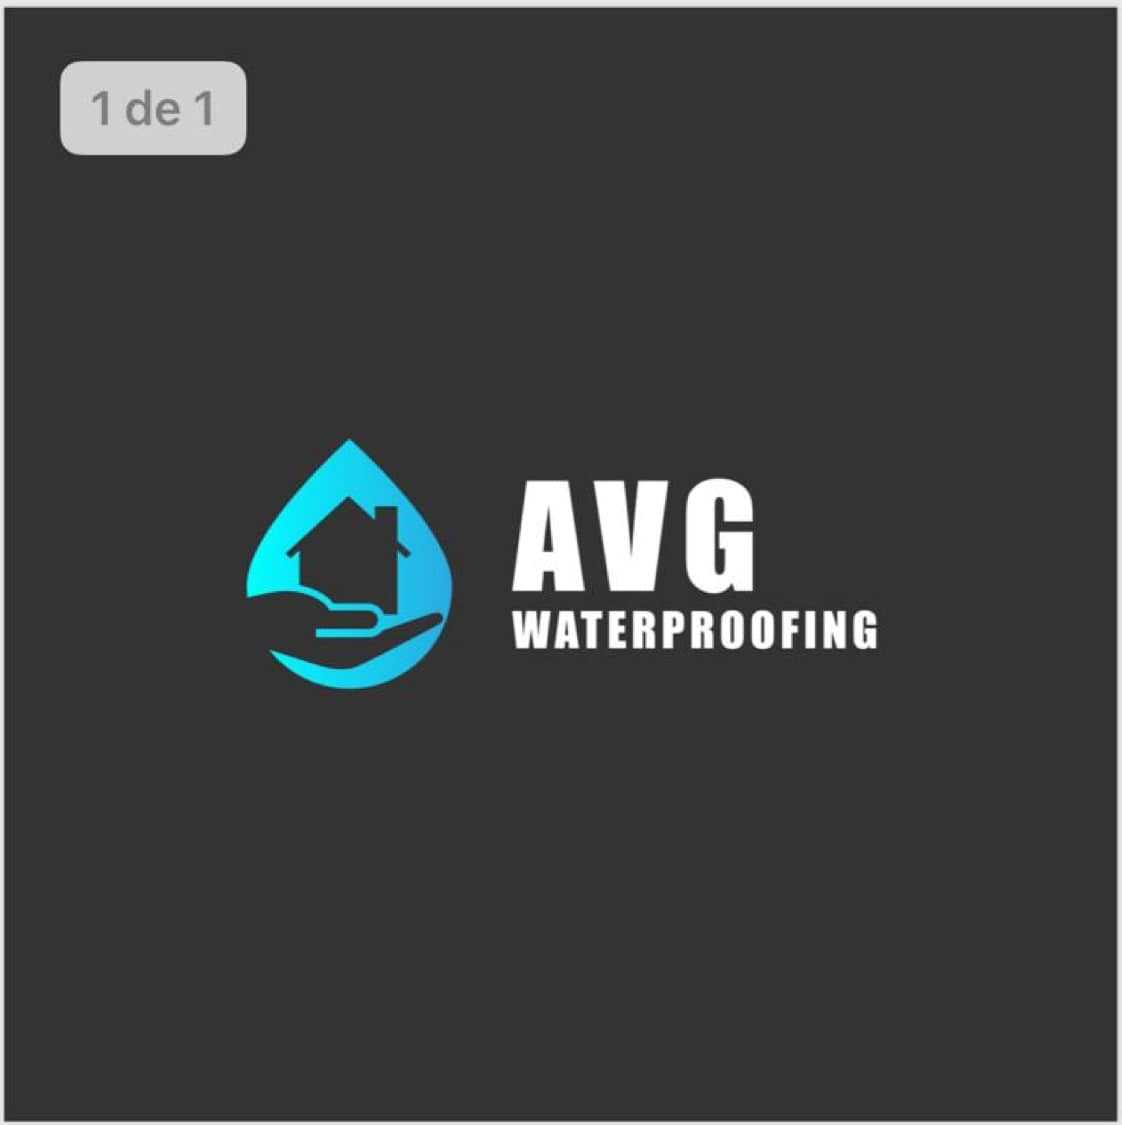 AVG Waterproofing, LLC